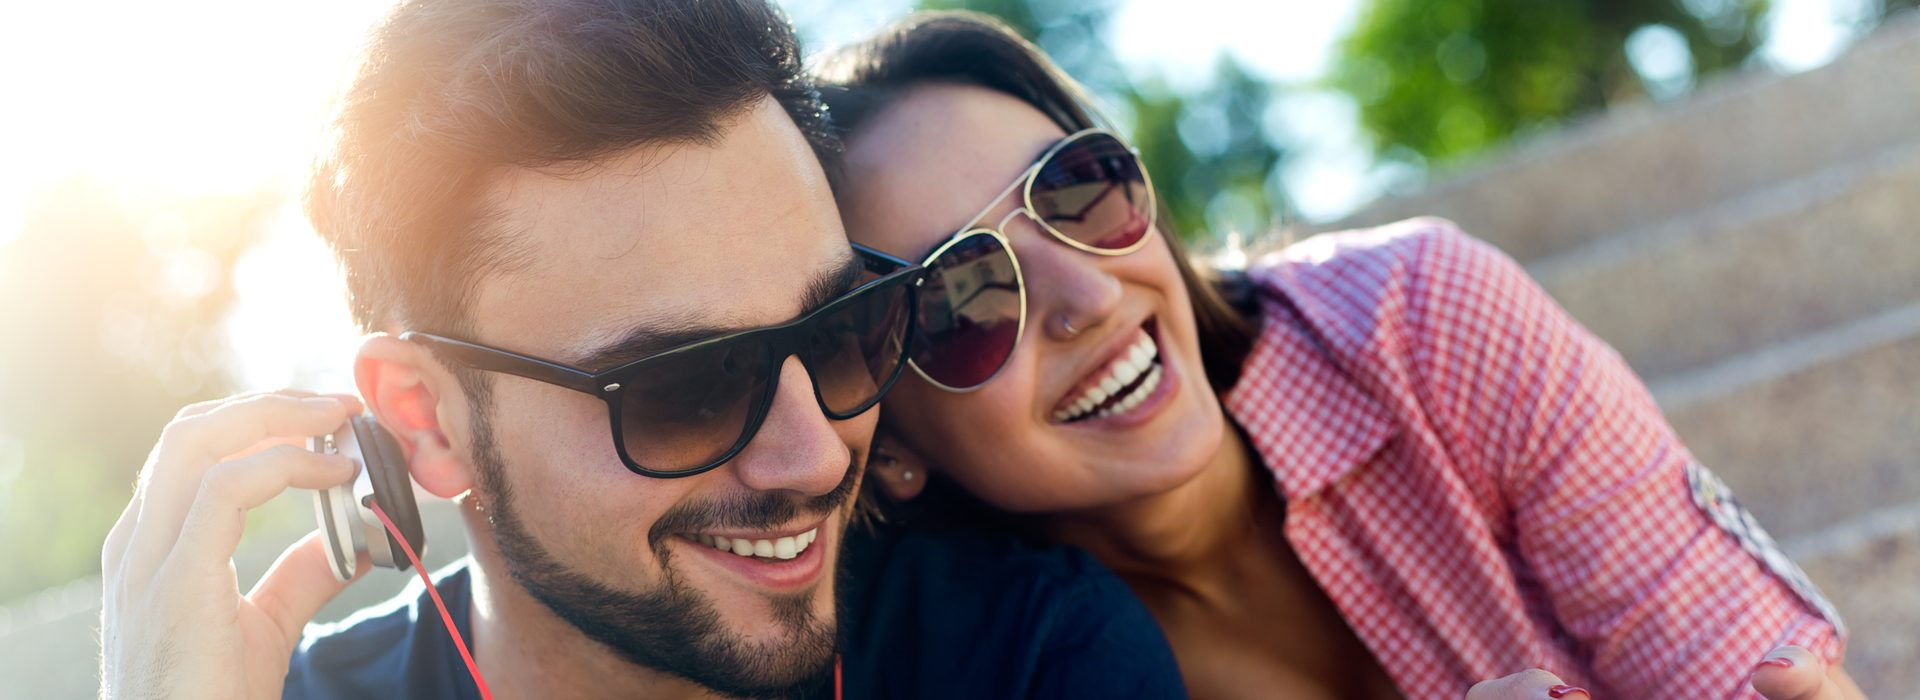 couple in sunglasses laughing